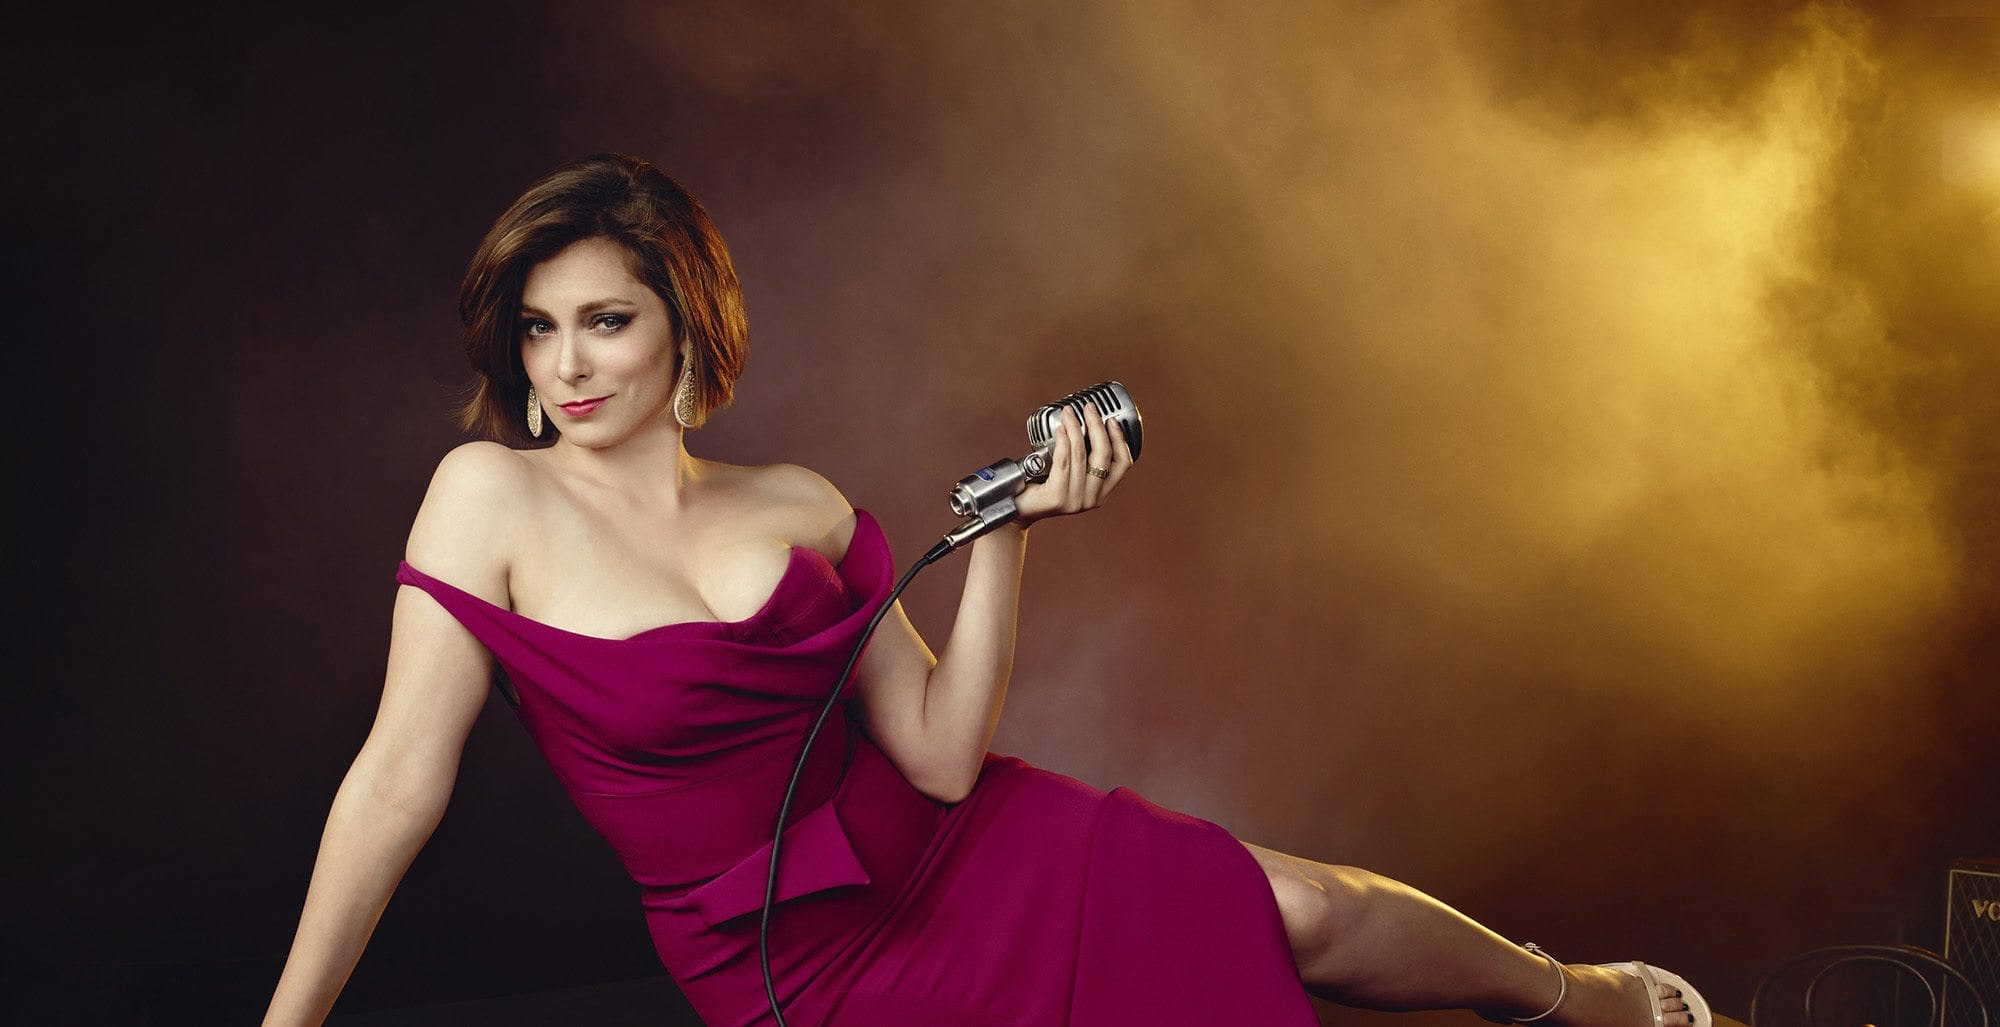 'Crazy Ex-Girlfriend' follows Rebecca, a successful crazy young woman who impulsively gives up everything in a desperate attempt to find love and happiness.